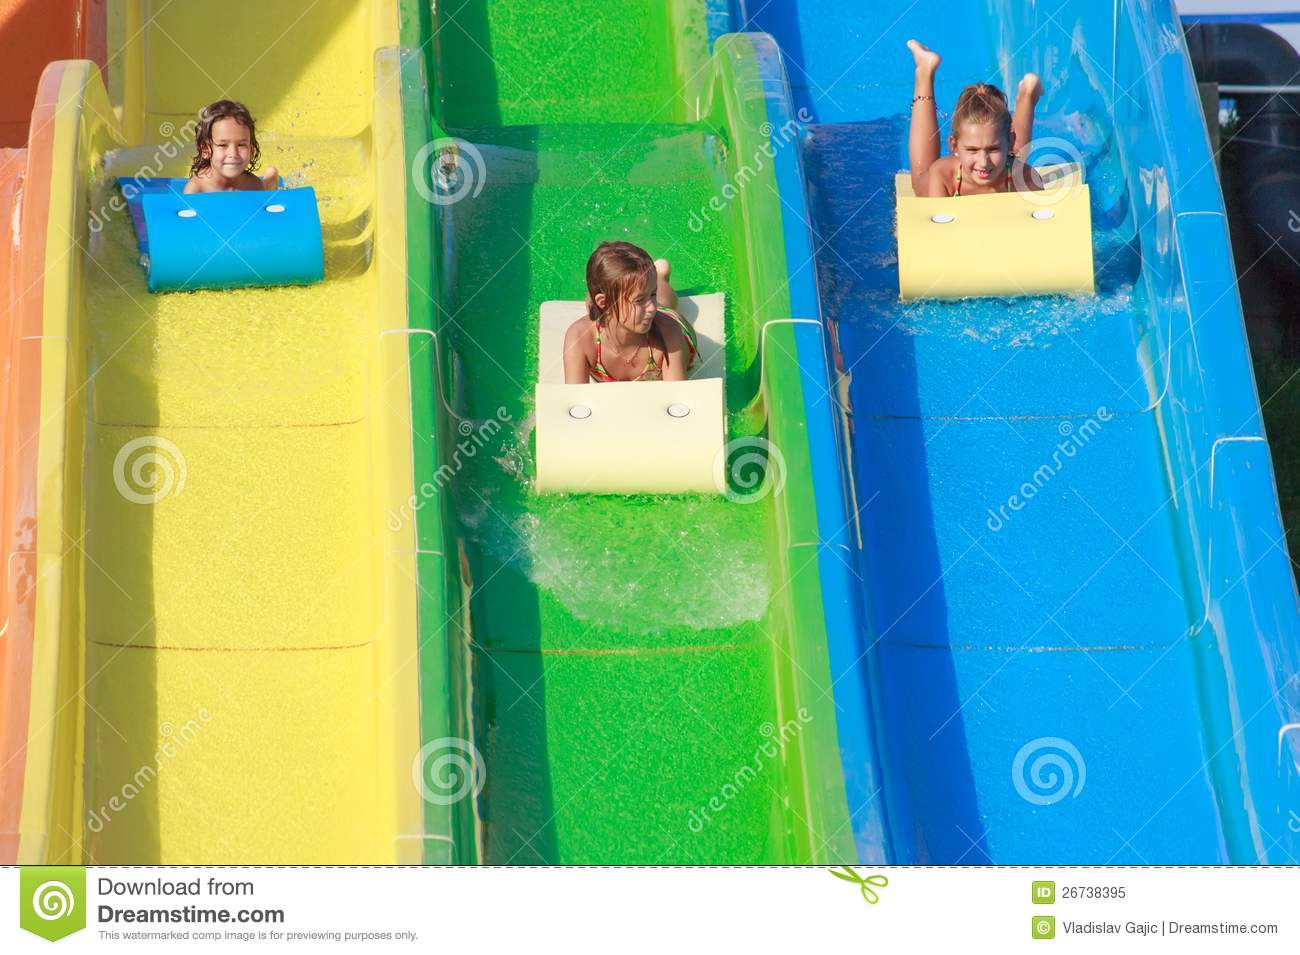 Elegant Water Slide Royalty Free Stock Photo  Image 26135785